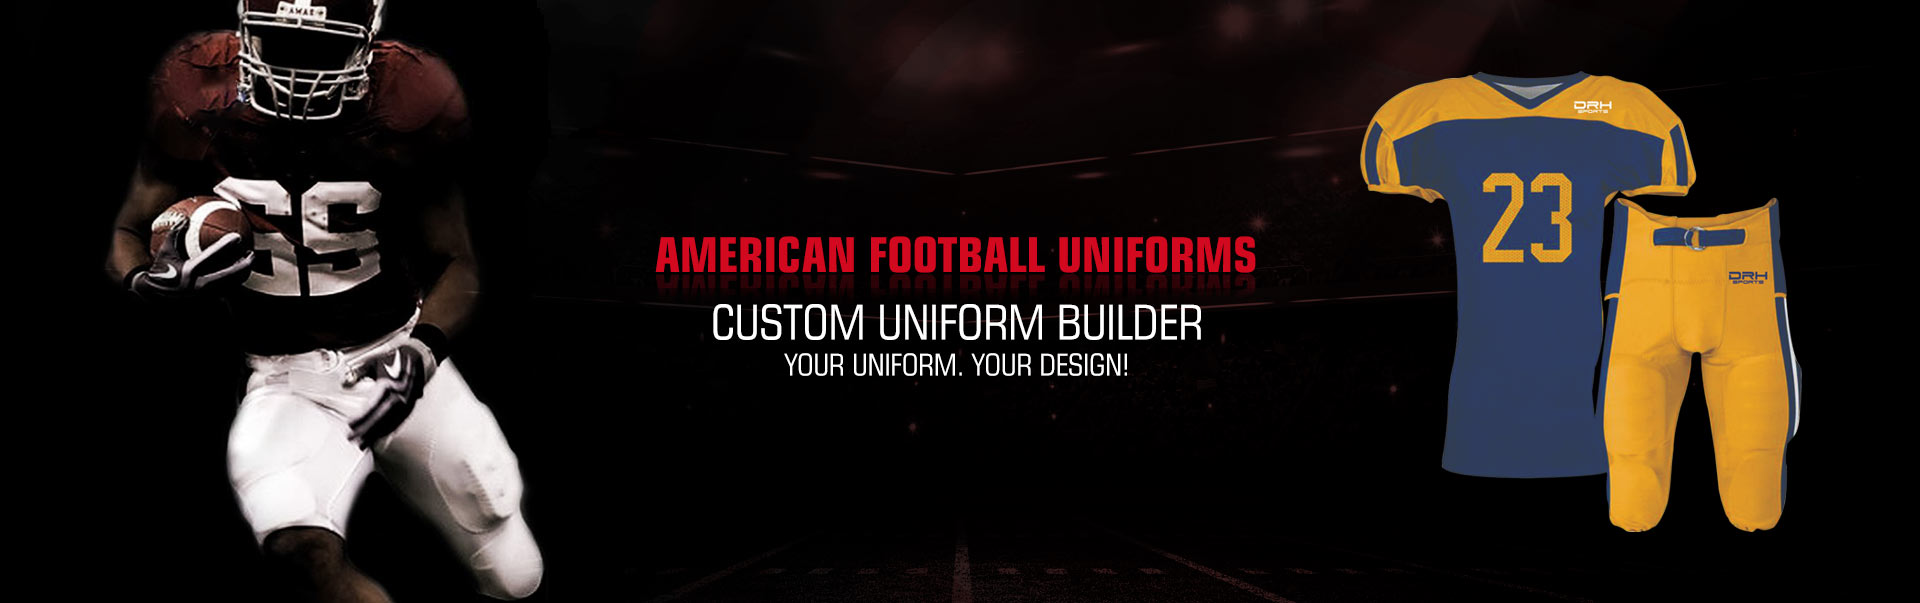 American Football Uniform Wholesaler, Suppliers in Provo